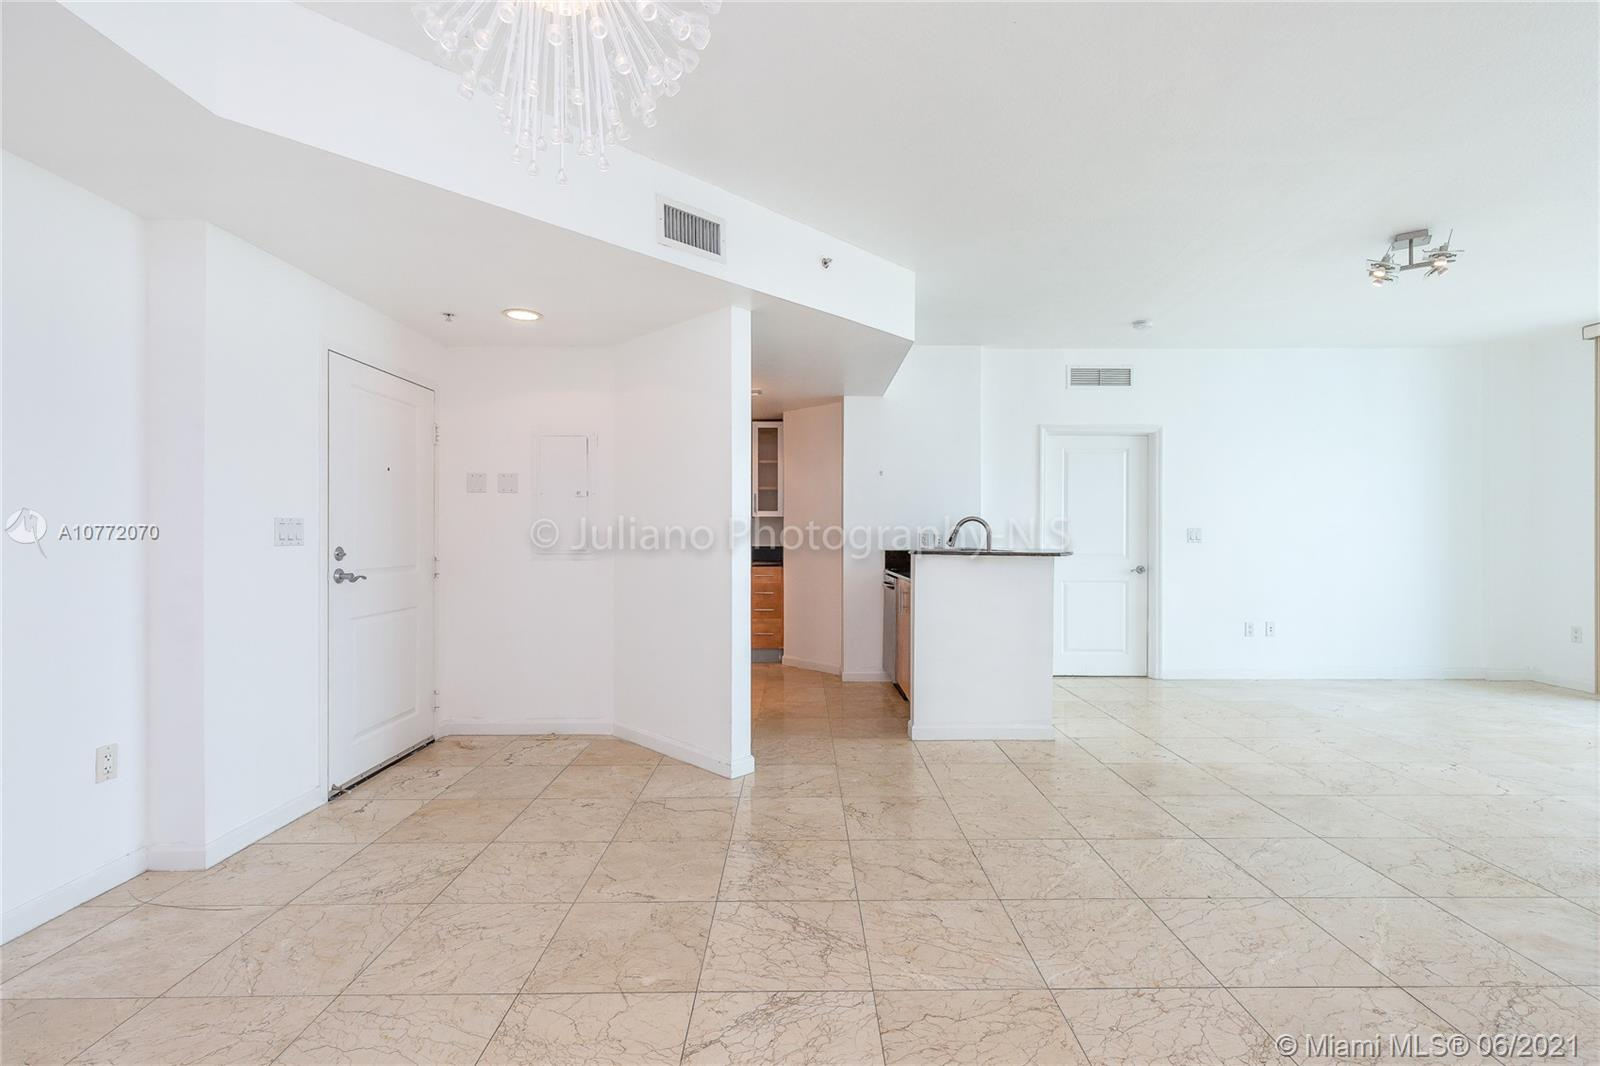 ENJOY BREATHTAKING UNOBSTRUCTED VIEWS OF MIAMI AND BISCAYNE BAY FROM THE SPACIOUS BALCONY OF THIS LOVELY CONDO LOCATED IN THE LUXURIOUS 360 CONDOMINIUM! IMMACULATE MARBLE FLOORS IN LIVING AREA. MASTER BATHROOM INCLUDES OVERSIZED JACUZZI AND SHOWER. THE KITCHEN IS EQUIPPED WITH TOP OF THE LINE STAINLESS STEEL APPLIANCES. BUILDING OFFERS A VARIETY OF AMENITIES, INCLUDING A PRIVATE MARINA, TWO POOLS, AND FITNESS CENTER WITH FREE VALET PARKING AND MUCH MORE!